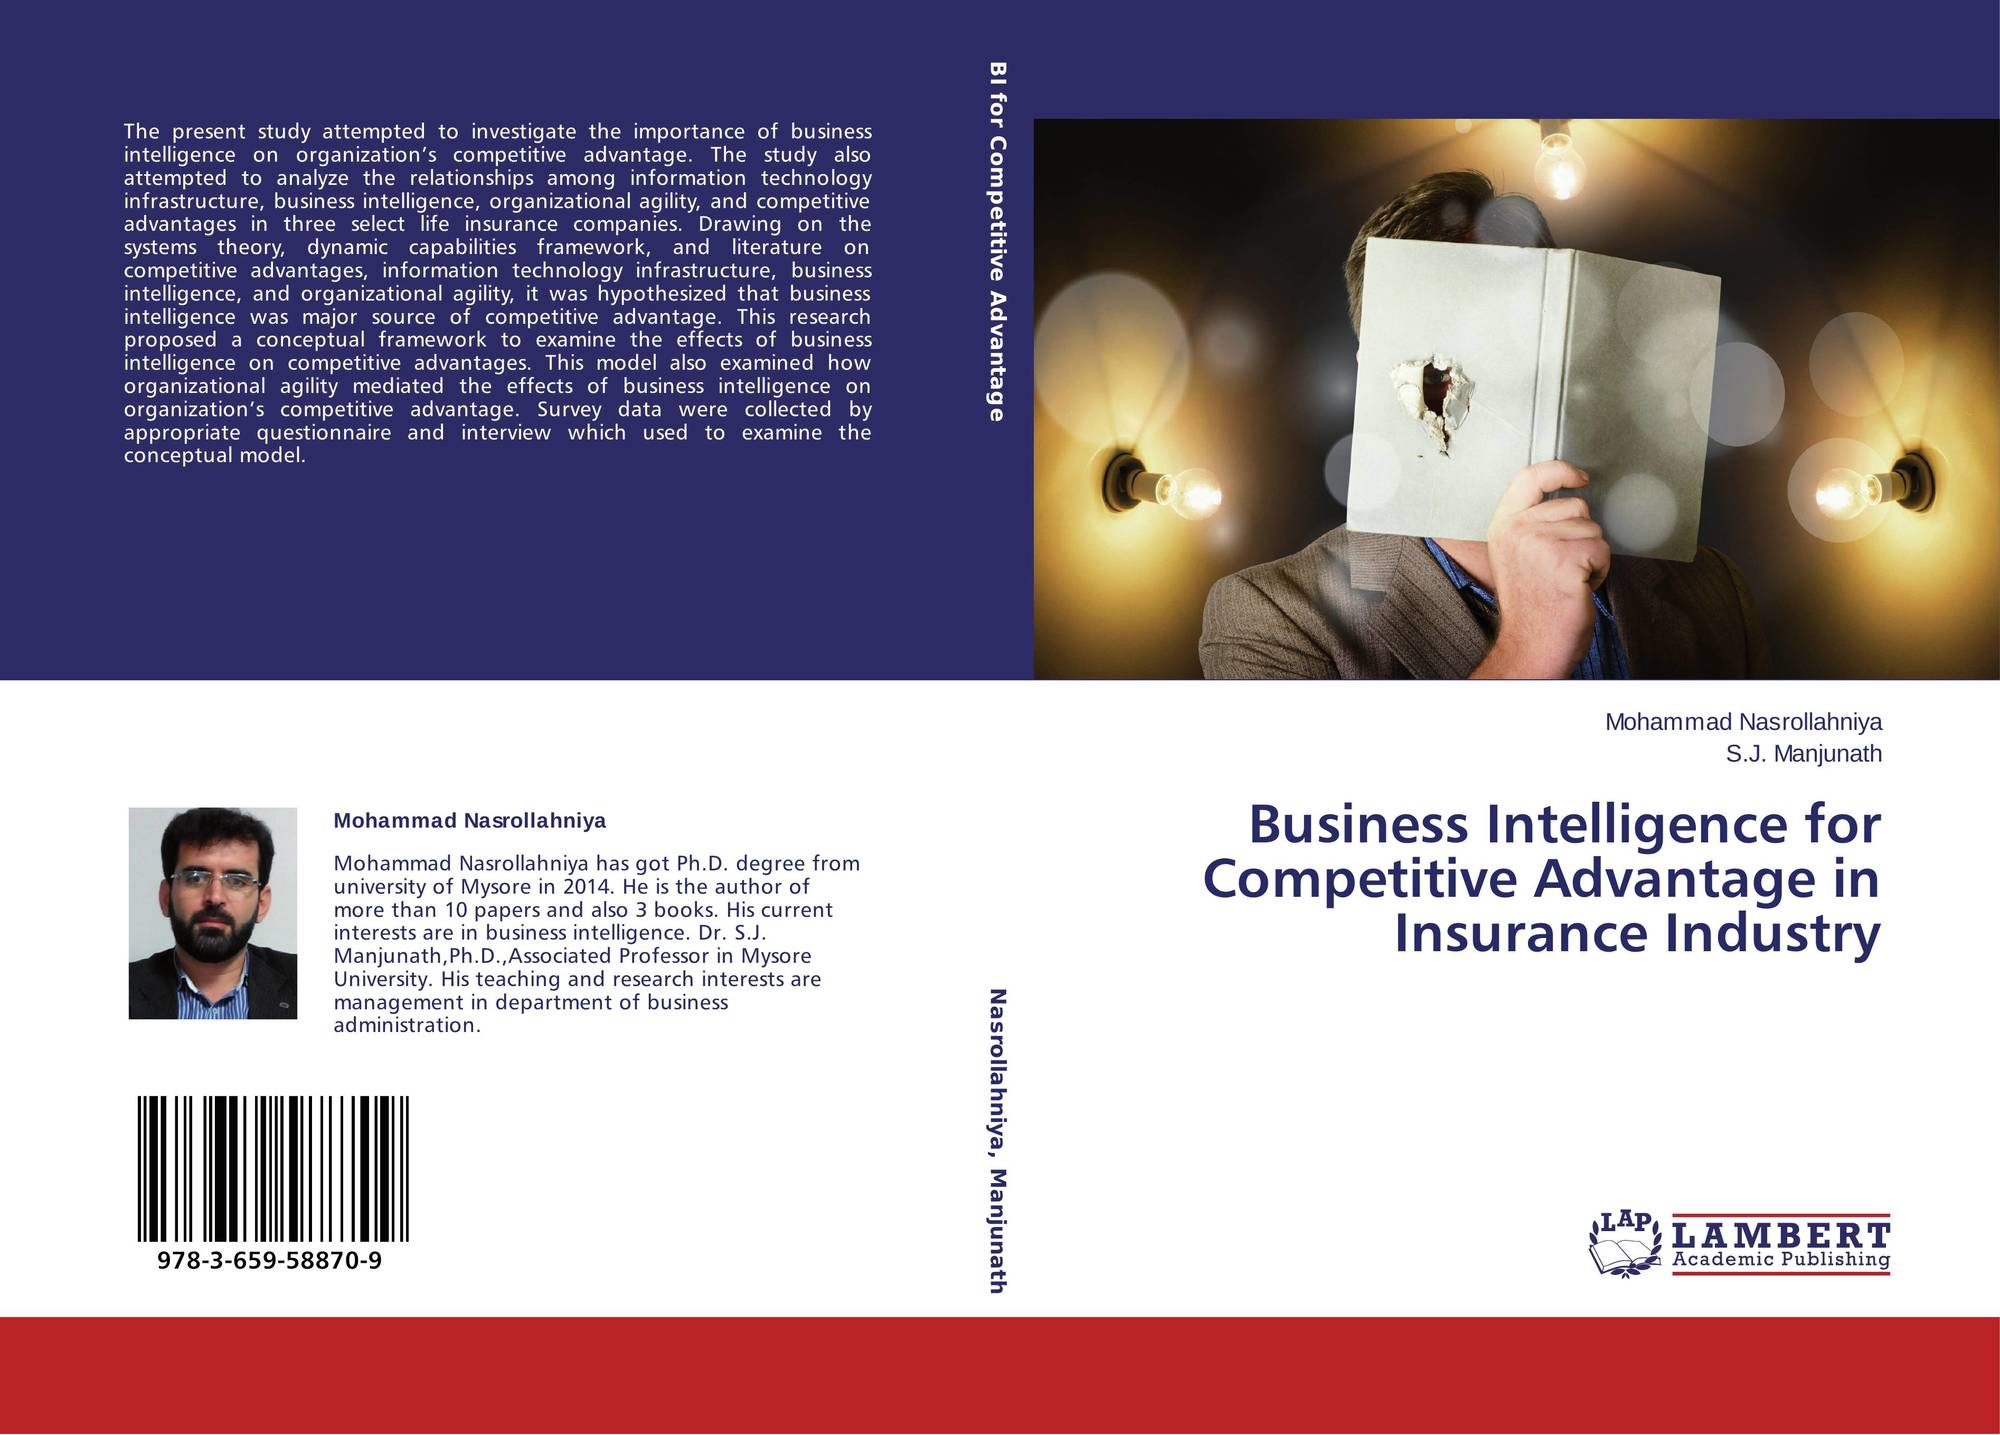 Using 'Business Intelligence' To Gain Competitive Advantage